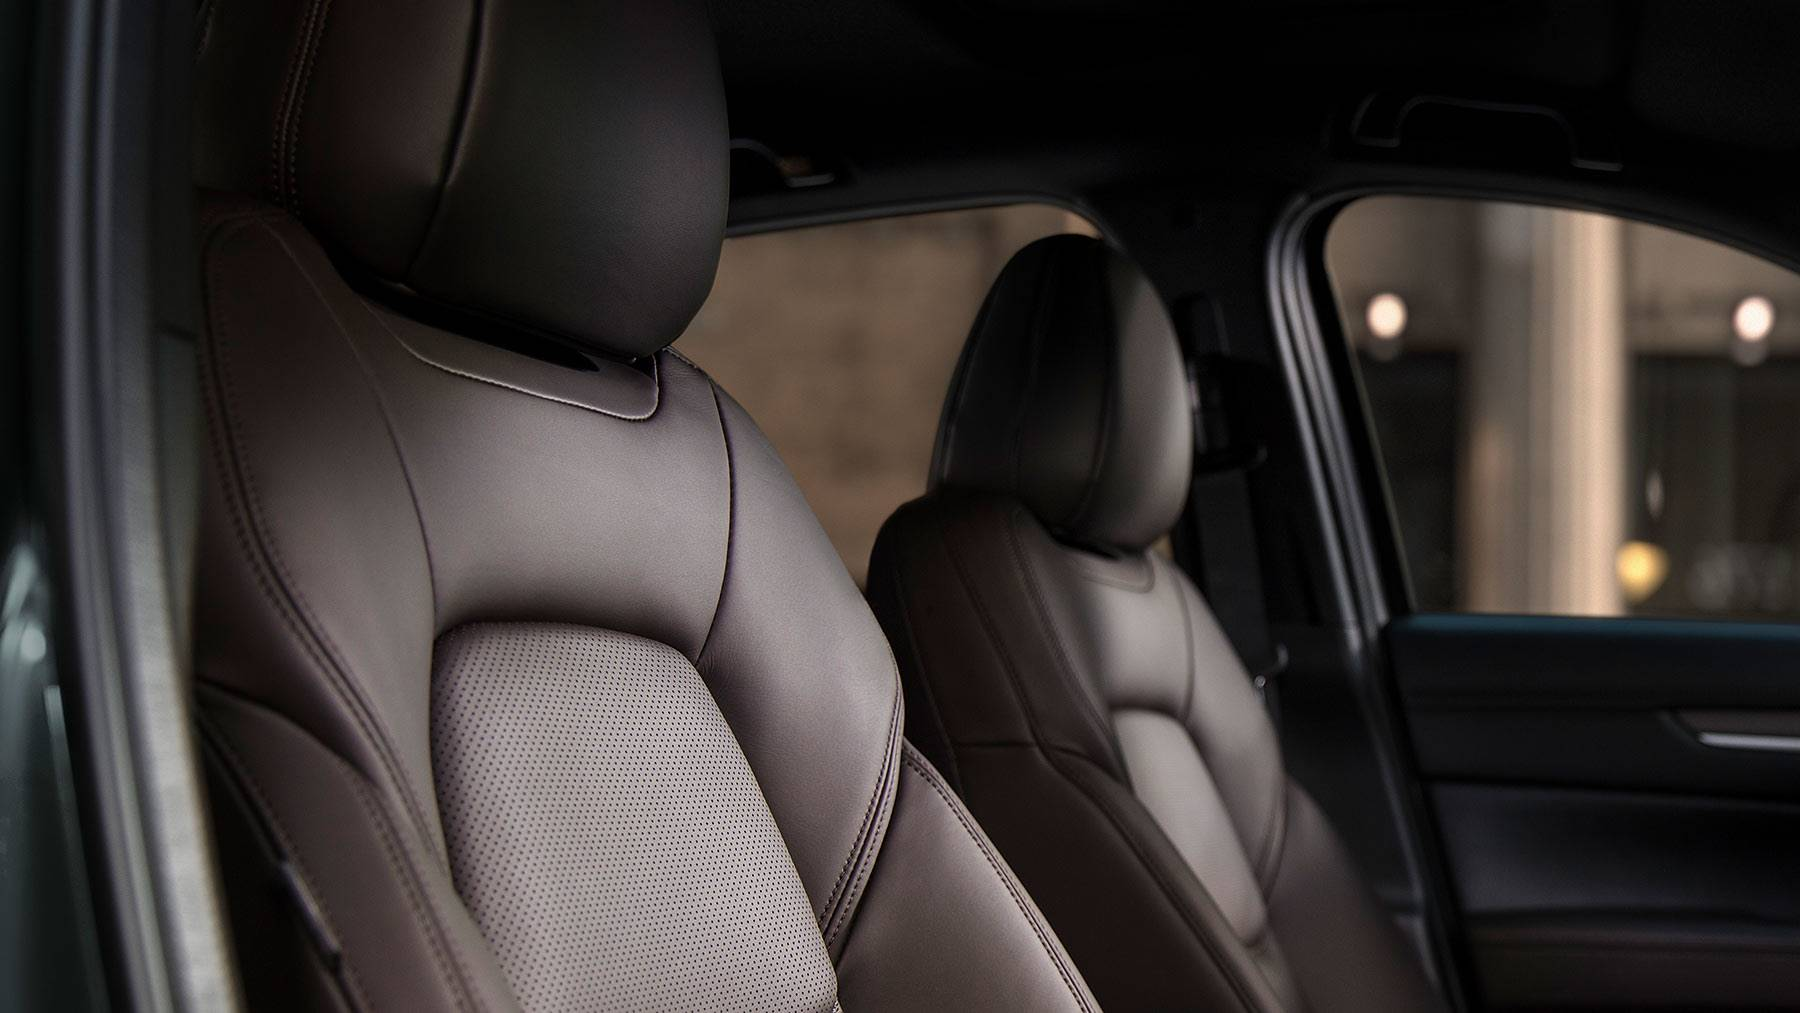 Enjoy Maximum Comfort During Any Drive in the Mazda CX-5!